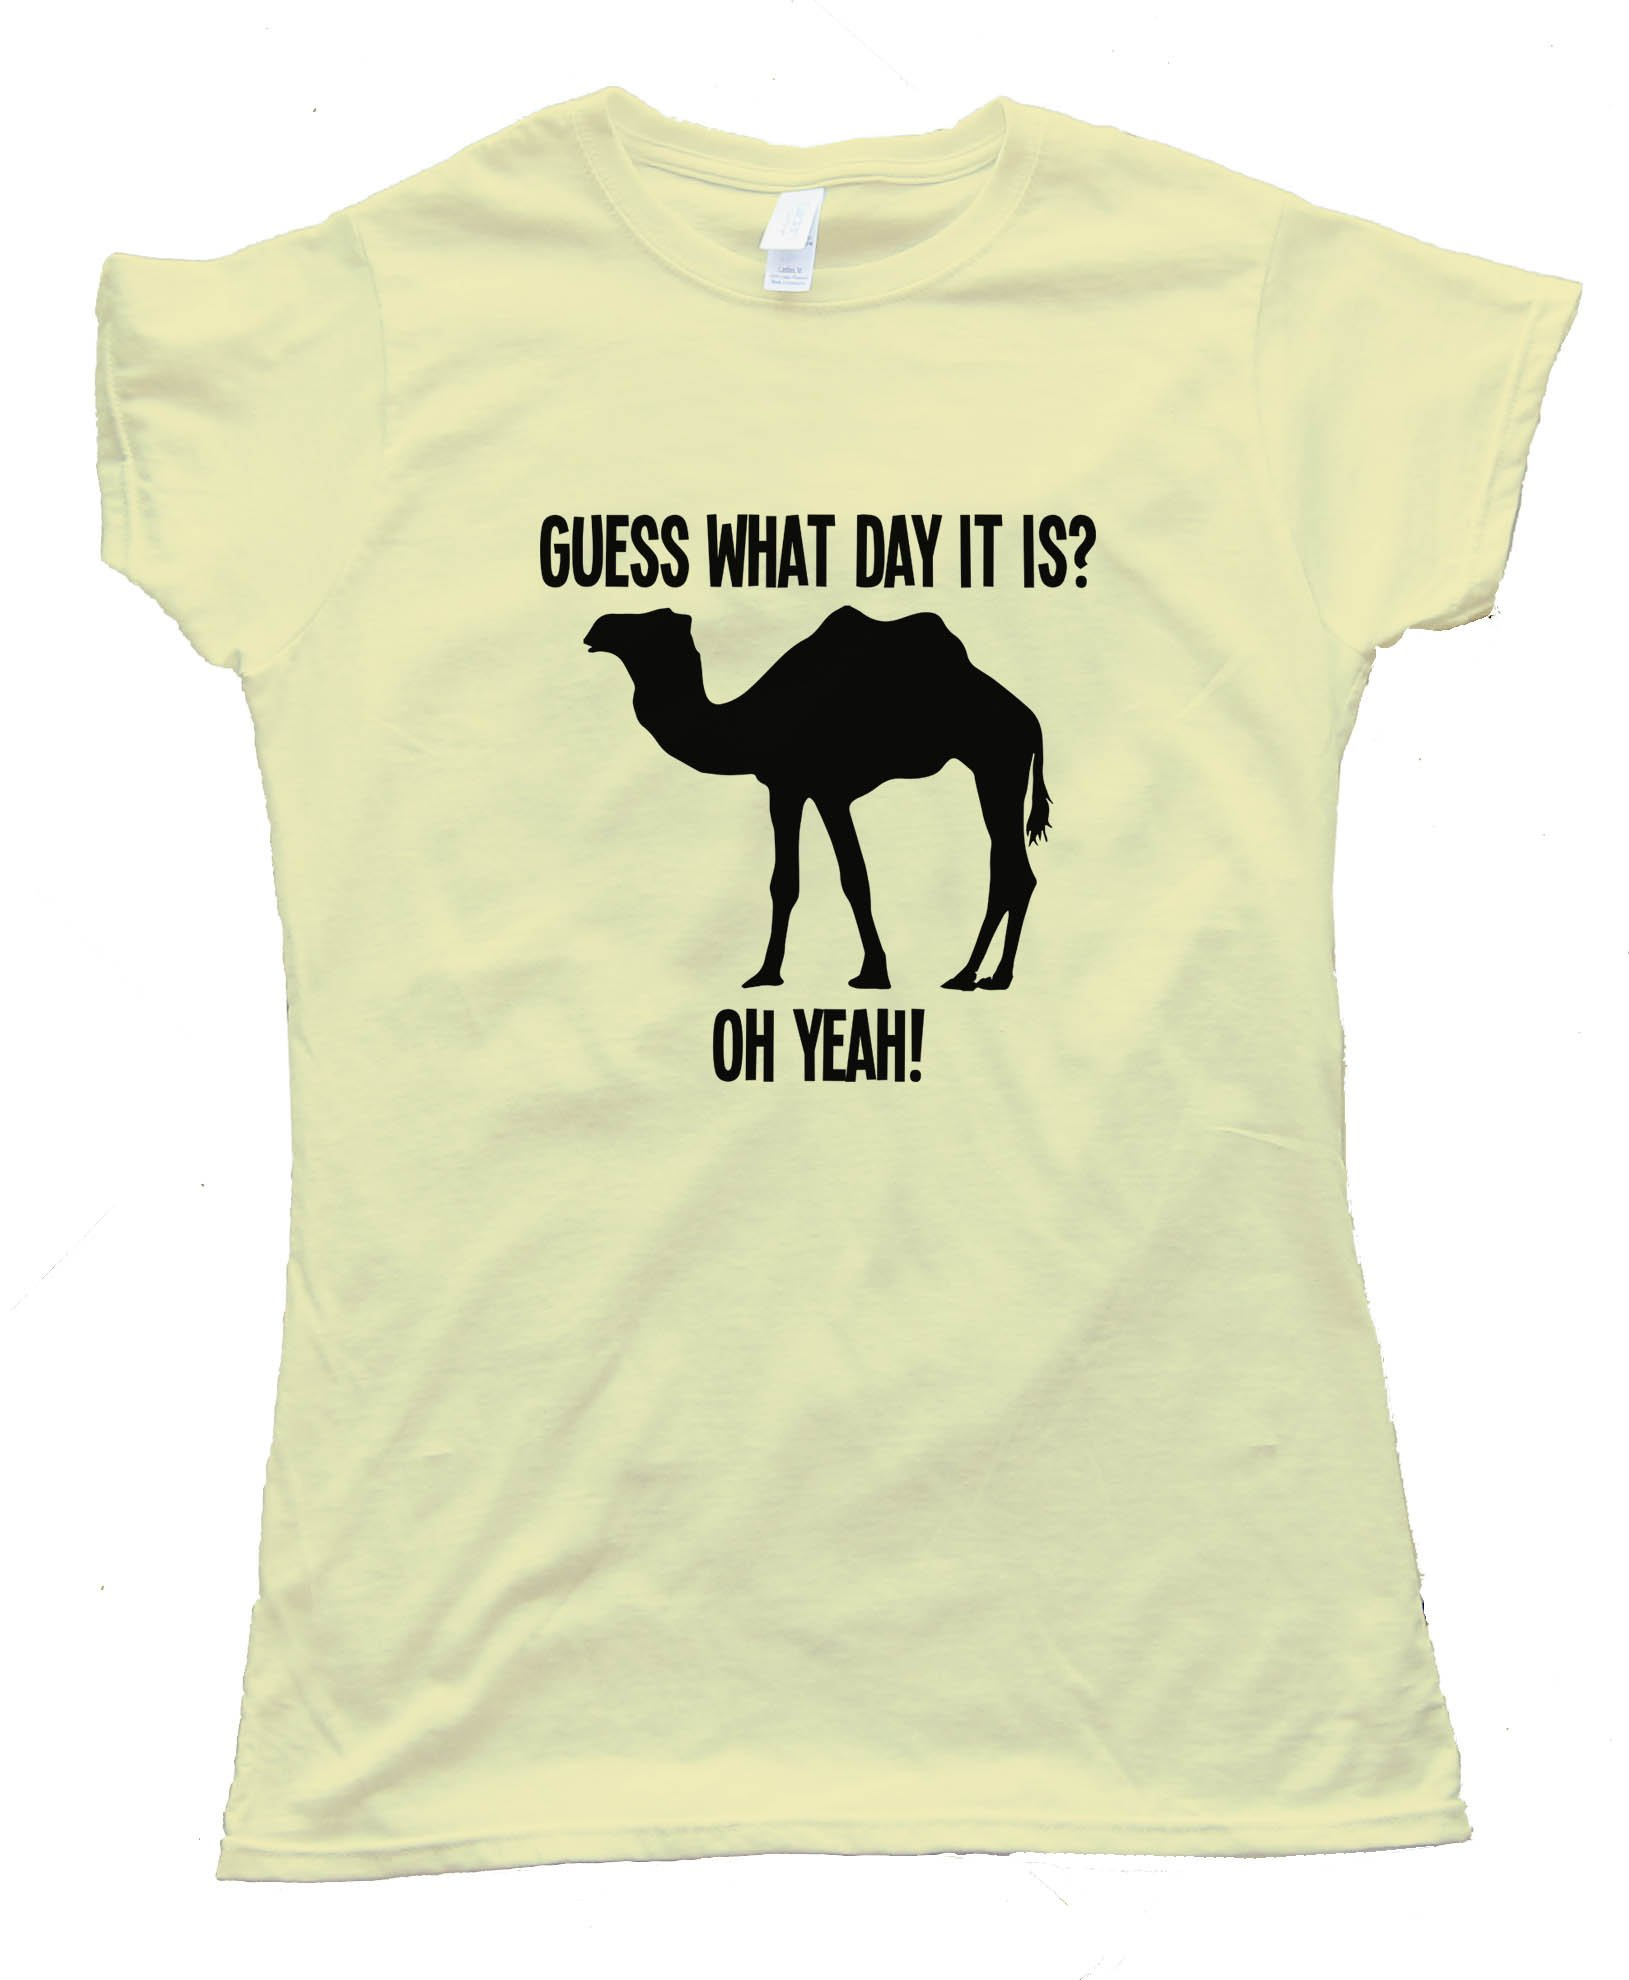 Womens Camel Silhouette Guess What Day It Is - Tee Shirt